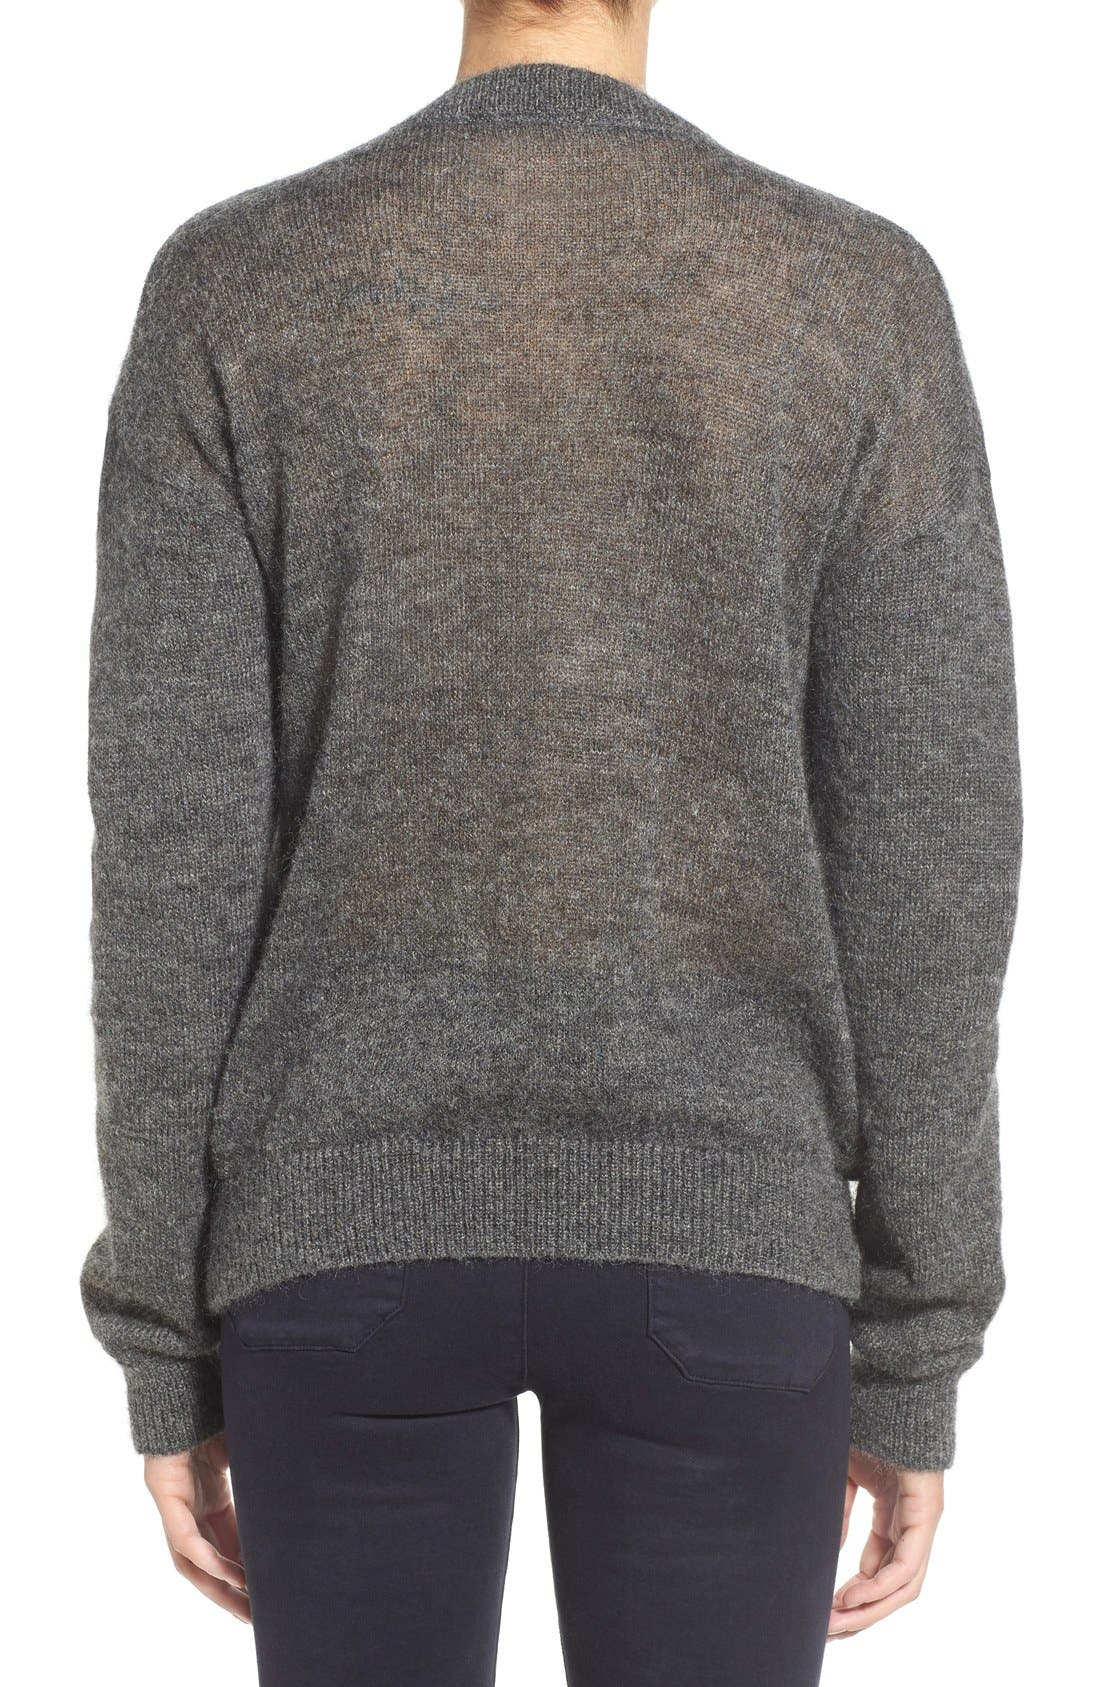 Alternate Image 2  - M.i.h. Jeans 'Delo' Mohair Blend Crewneck Sweater